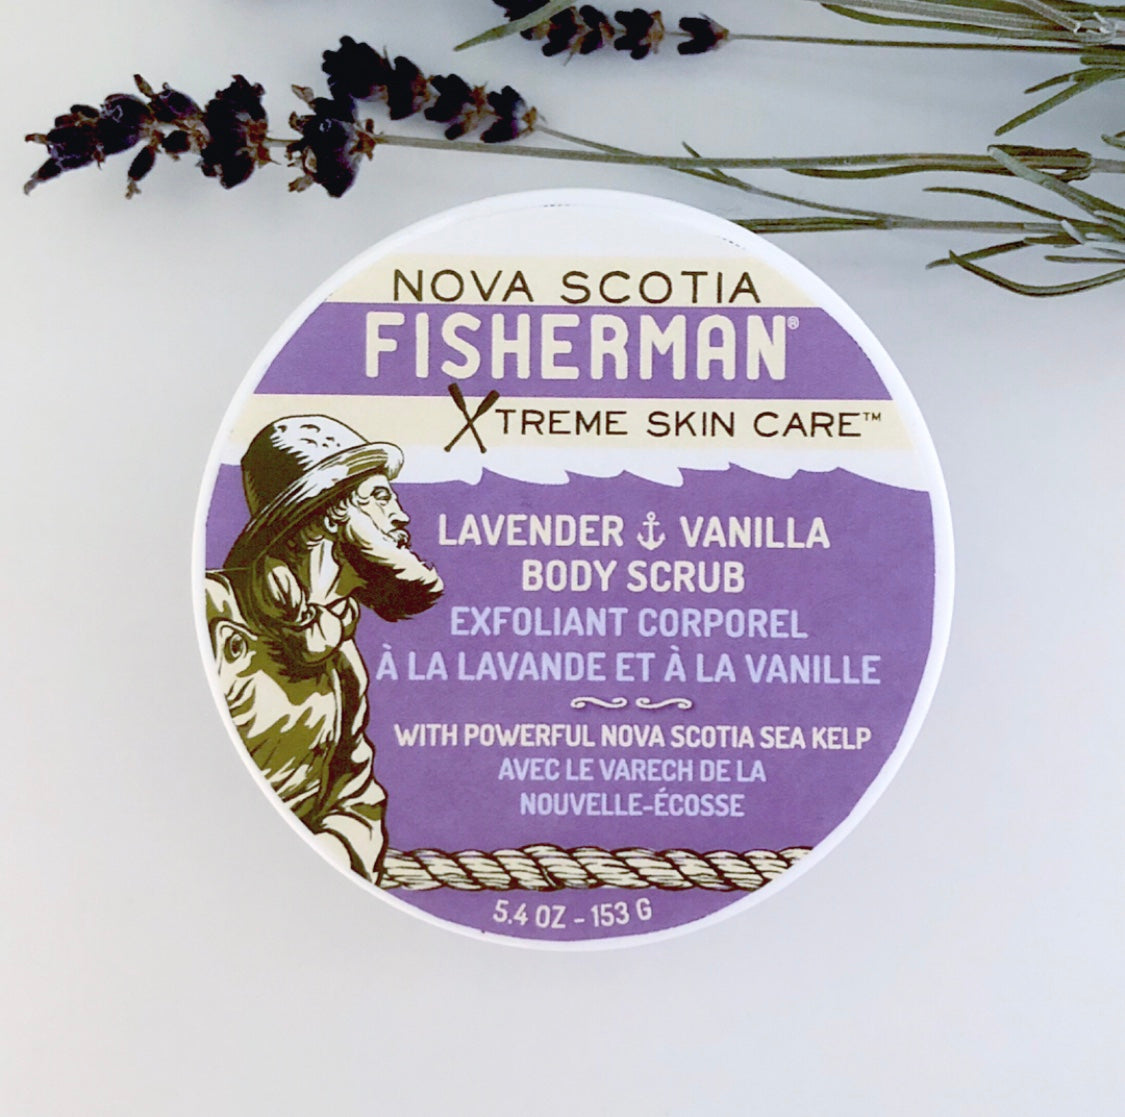 Salt-N-Sea Body Scrub - Lavender & Vanilla - Nova Scotia Fisherman Sea Kelp Skincare